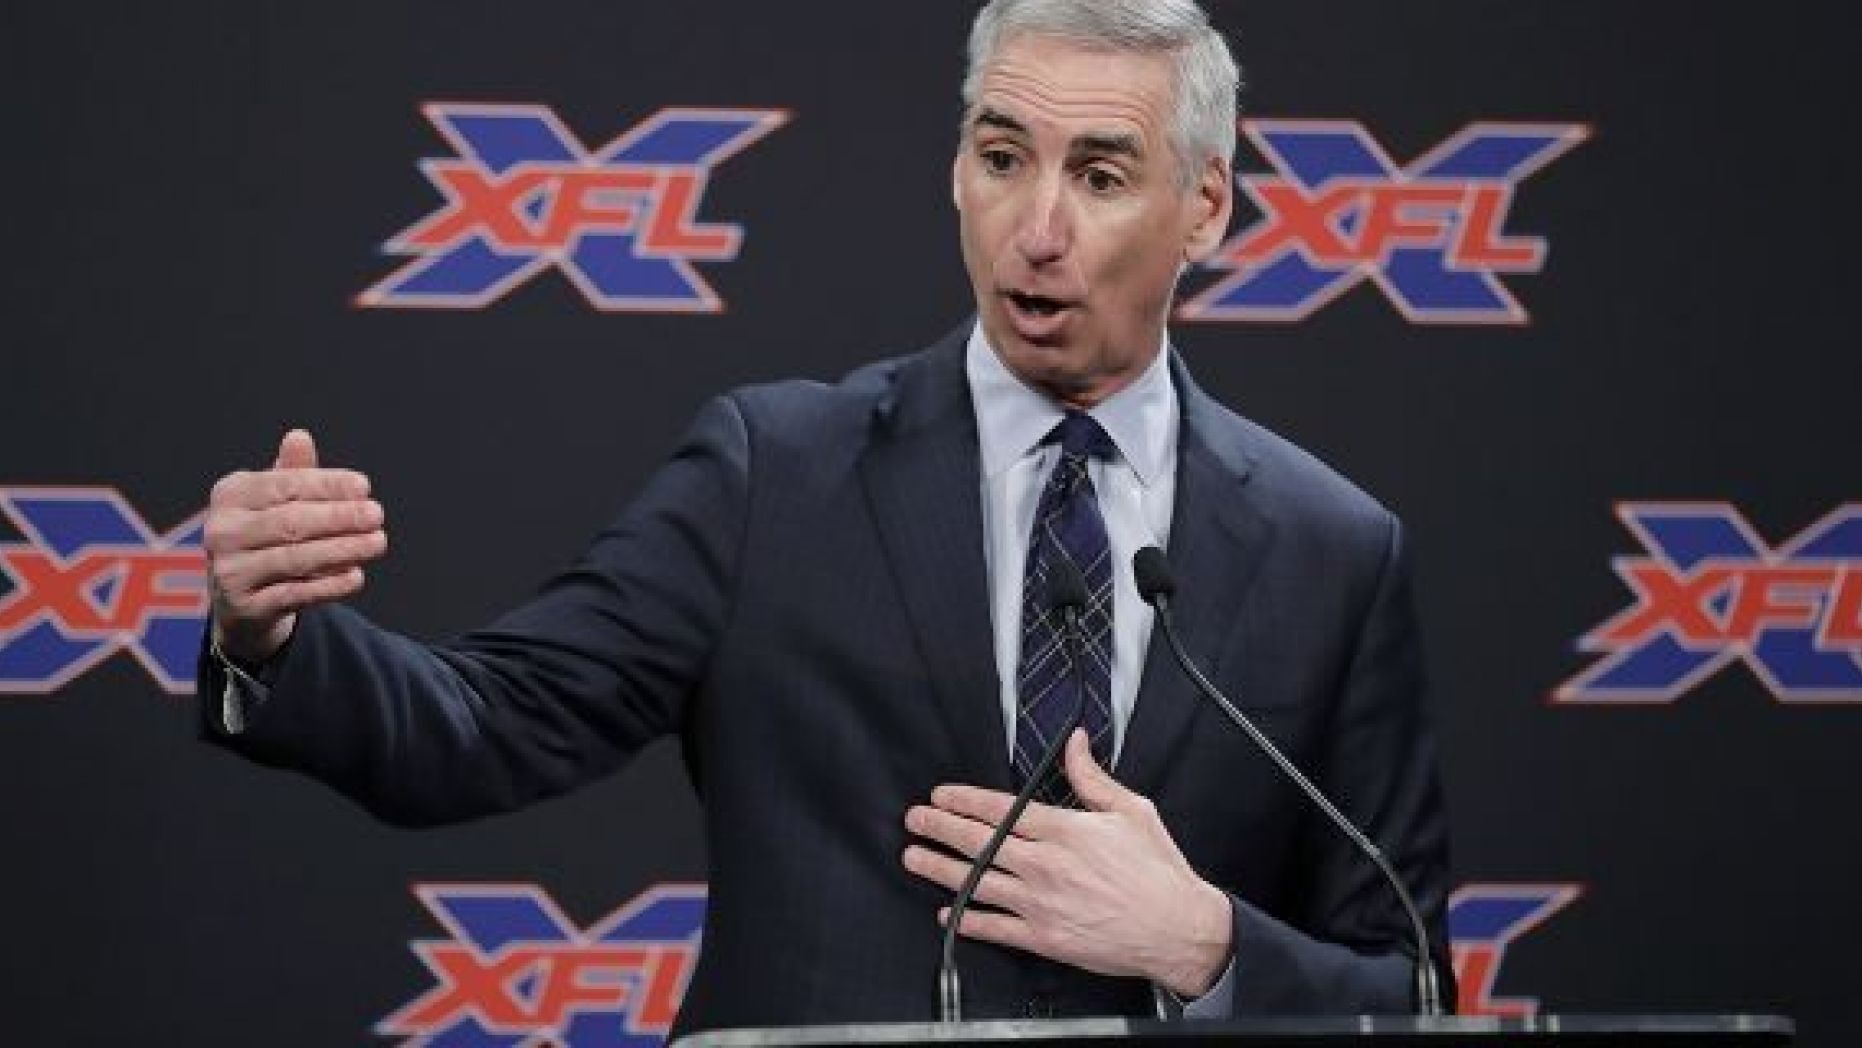 FILE - In this Feb. 25, 2019, file photo, XFL Football Commissioner Oliver Luck talks to reporters before introducing former NFL football quarterback Jim Zorn as the head coach for Seattle